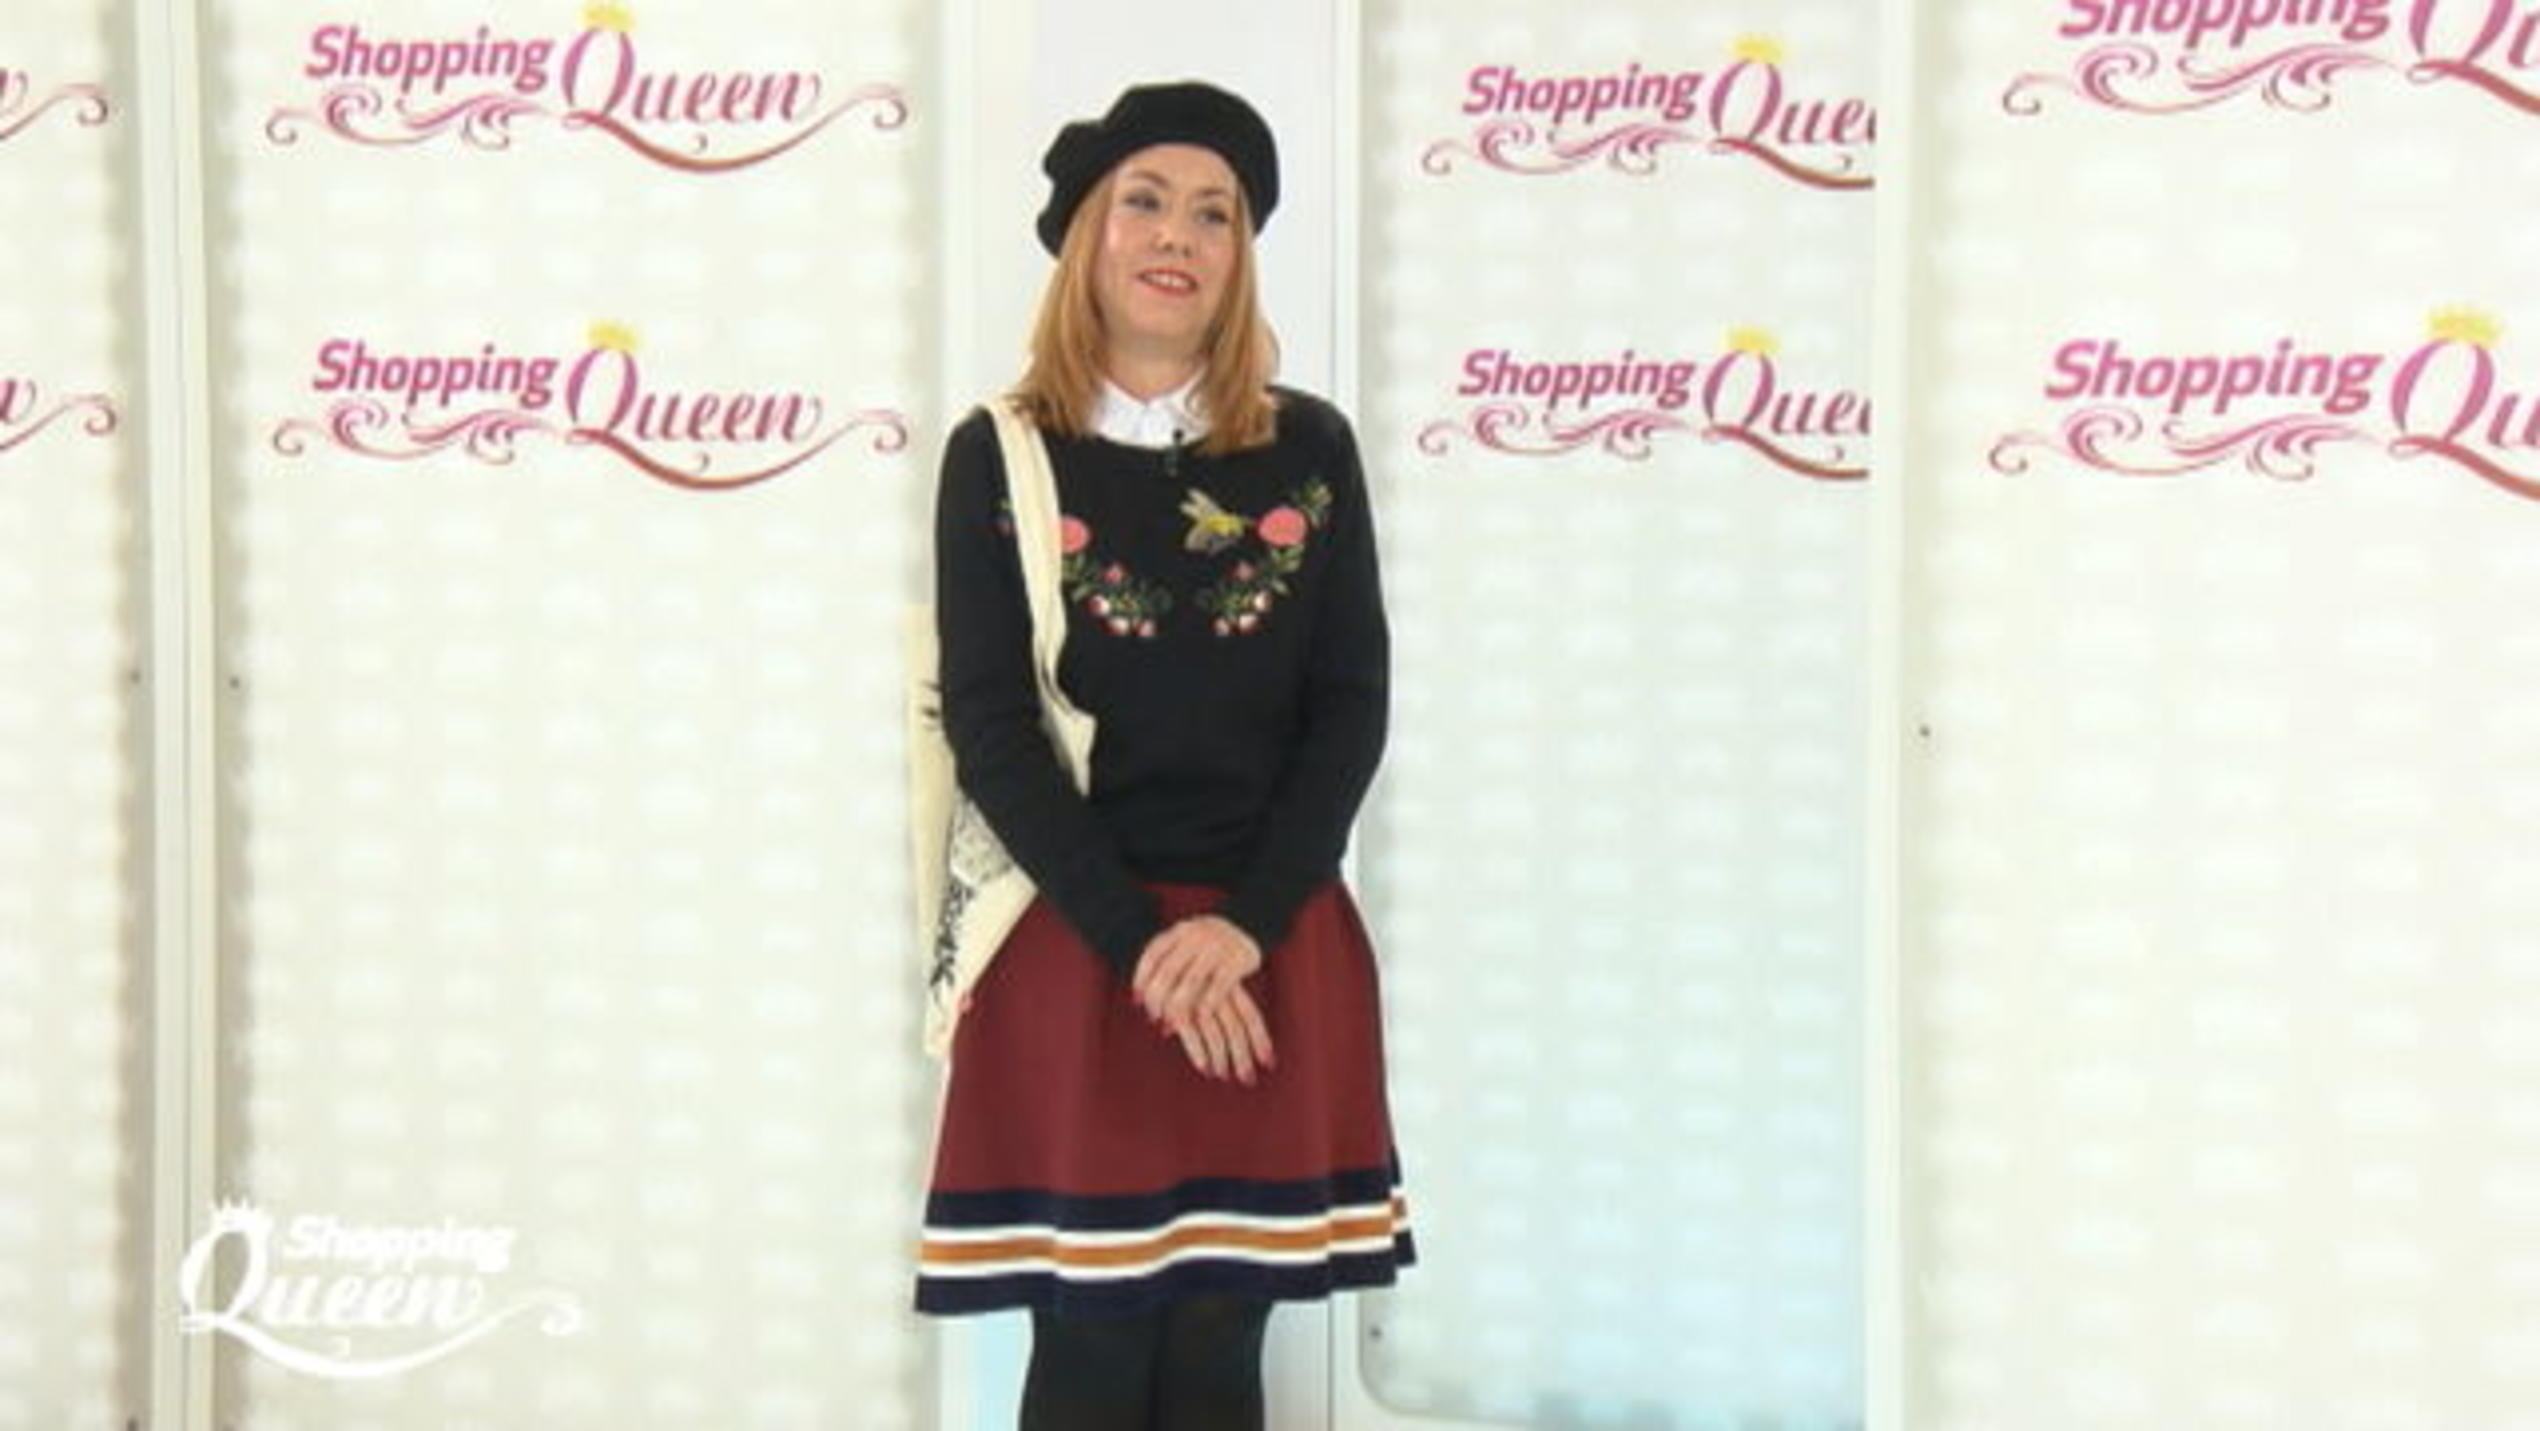 """Shopping Queen""-Kandidatin Leslie auf dem Catwalk."